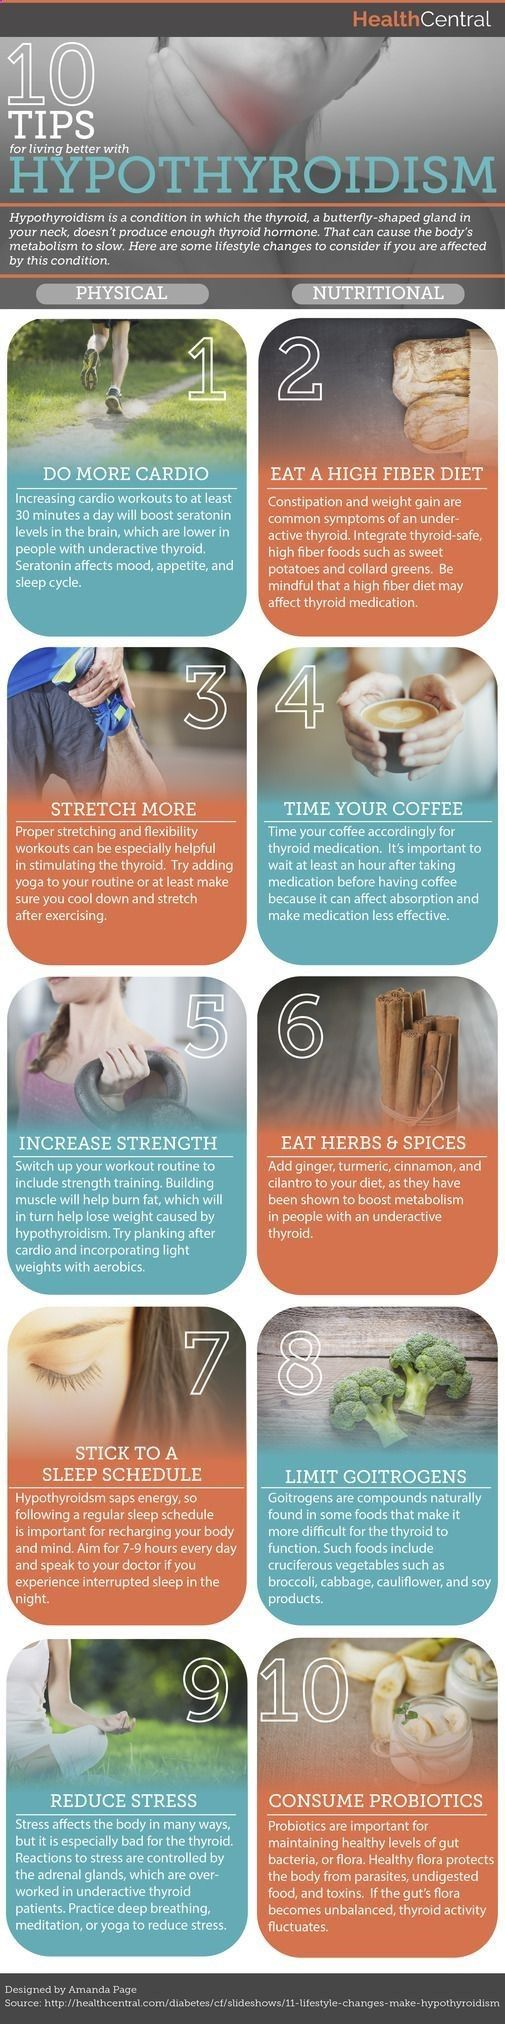 Lean Belly Breakthrough Leading an overall healthy lifestyle, that includes eating well and exercising, can help you manage hypothyroidism. But what else can you do to live well with hypothyroidism? This Inforgraphic will take you through 10tips for living better with hypothyroidism! Source: s-media-cache-ak0... Get the Complete Lean Belly Breakthrough System